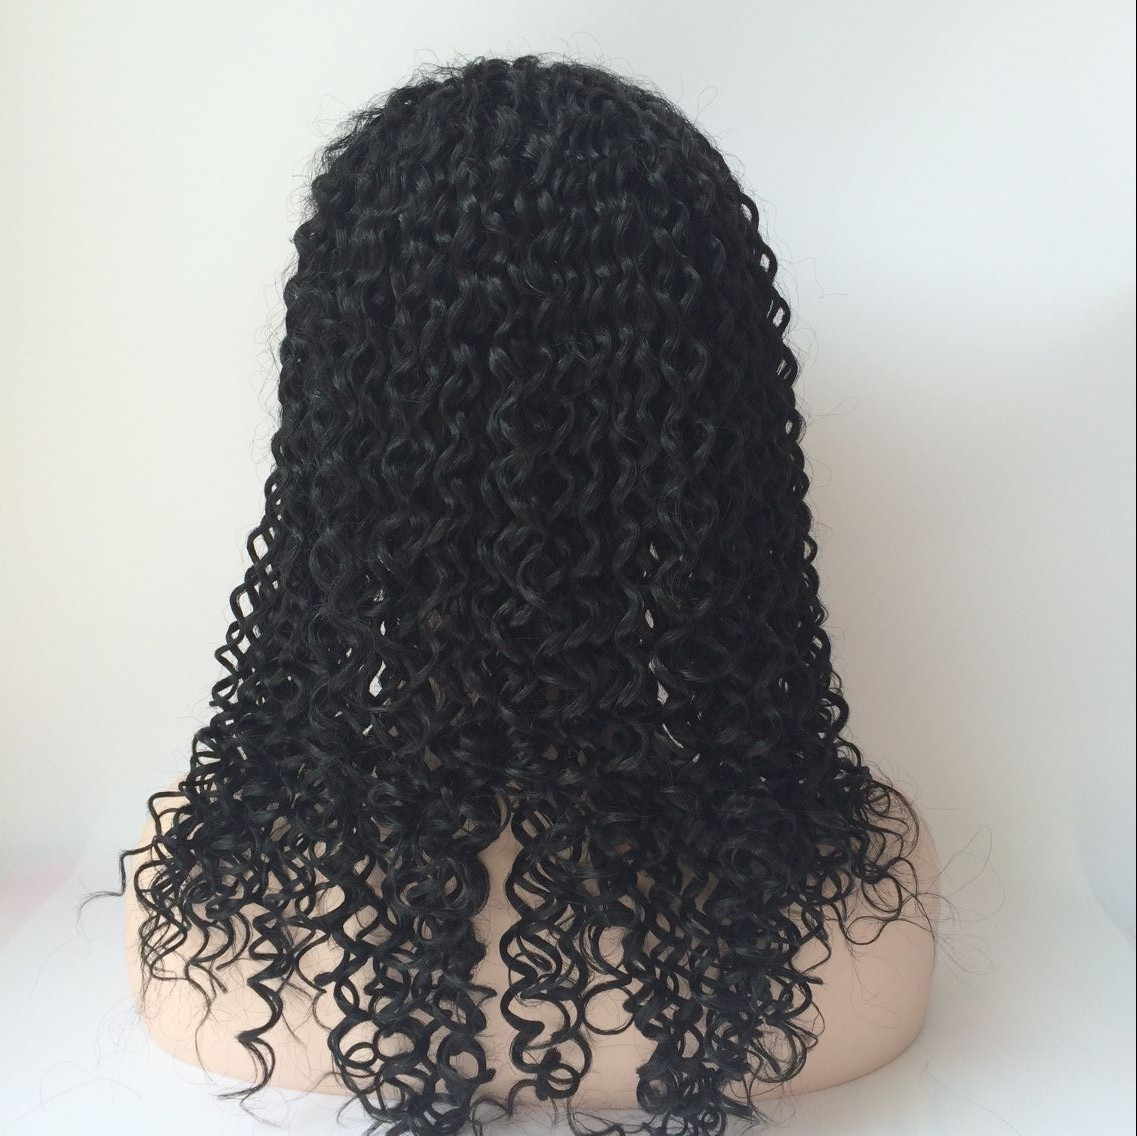 brazilian deep curly full lace wig 18inch